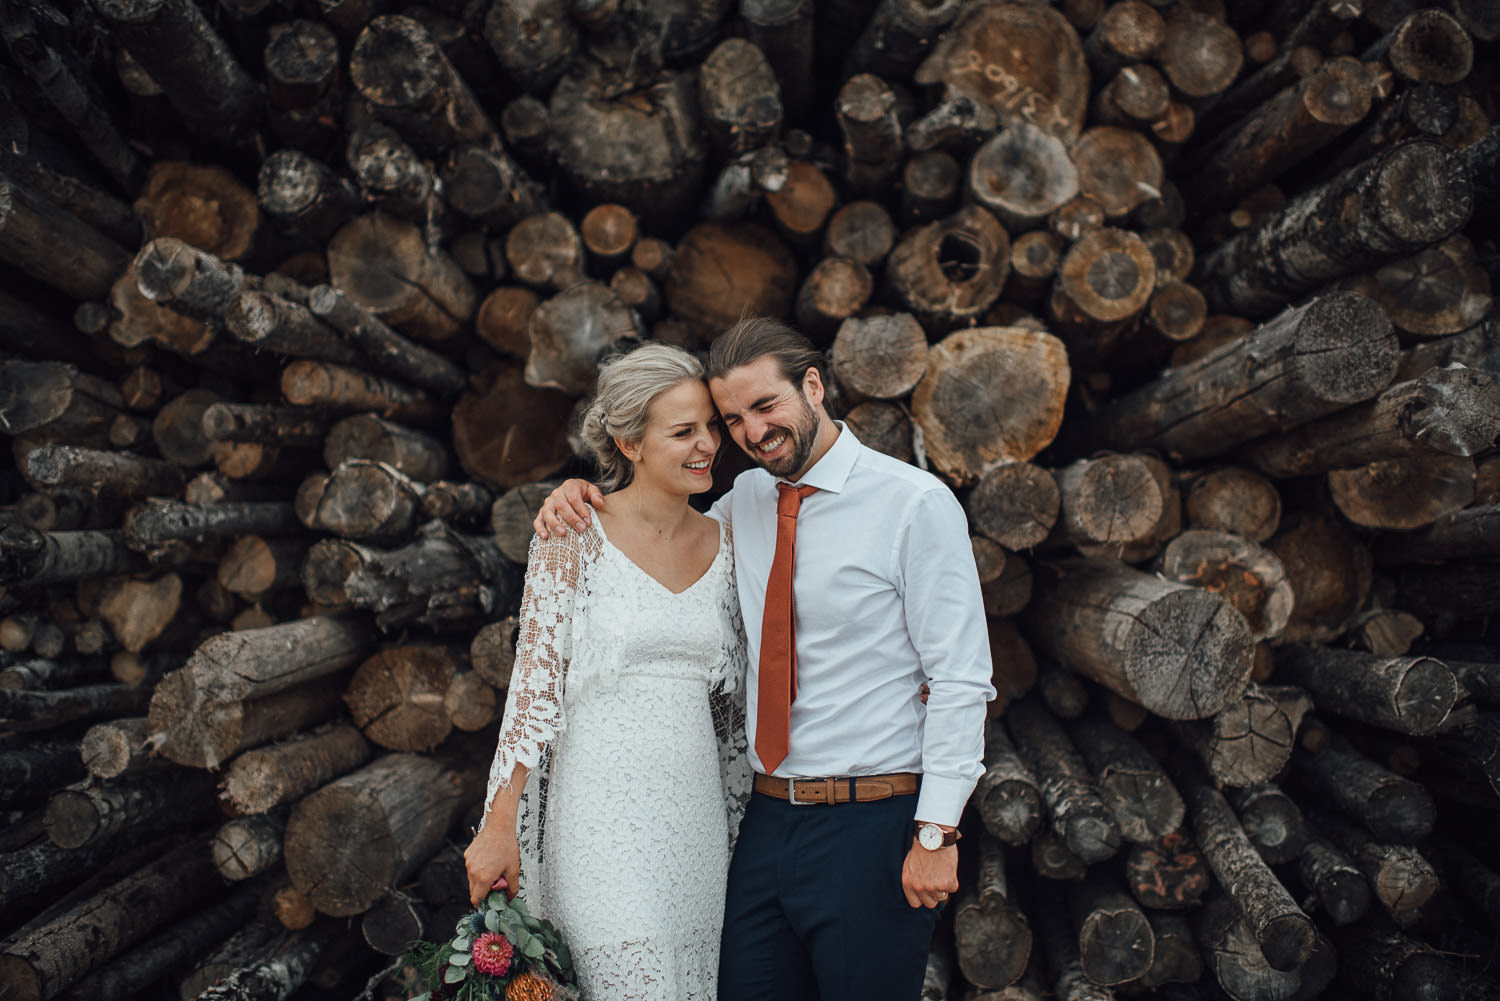 woodland outdoor festival wedding by creative and alternative london wedding photographer the shannons photography